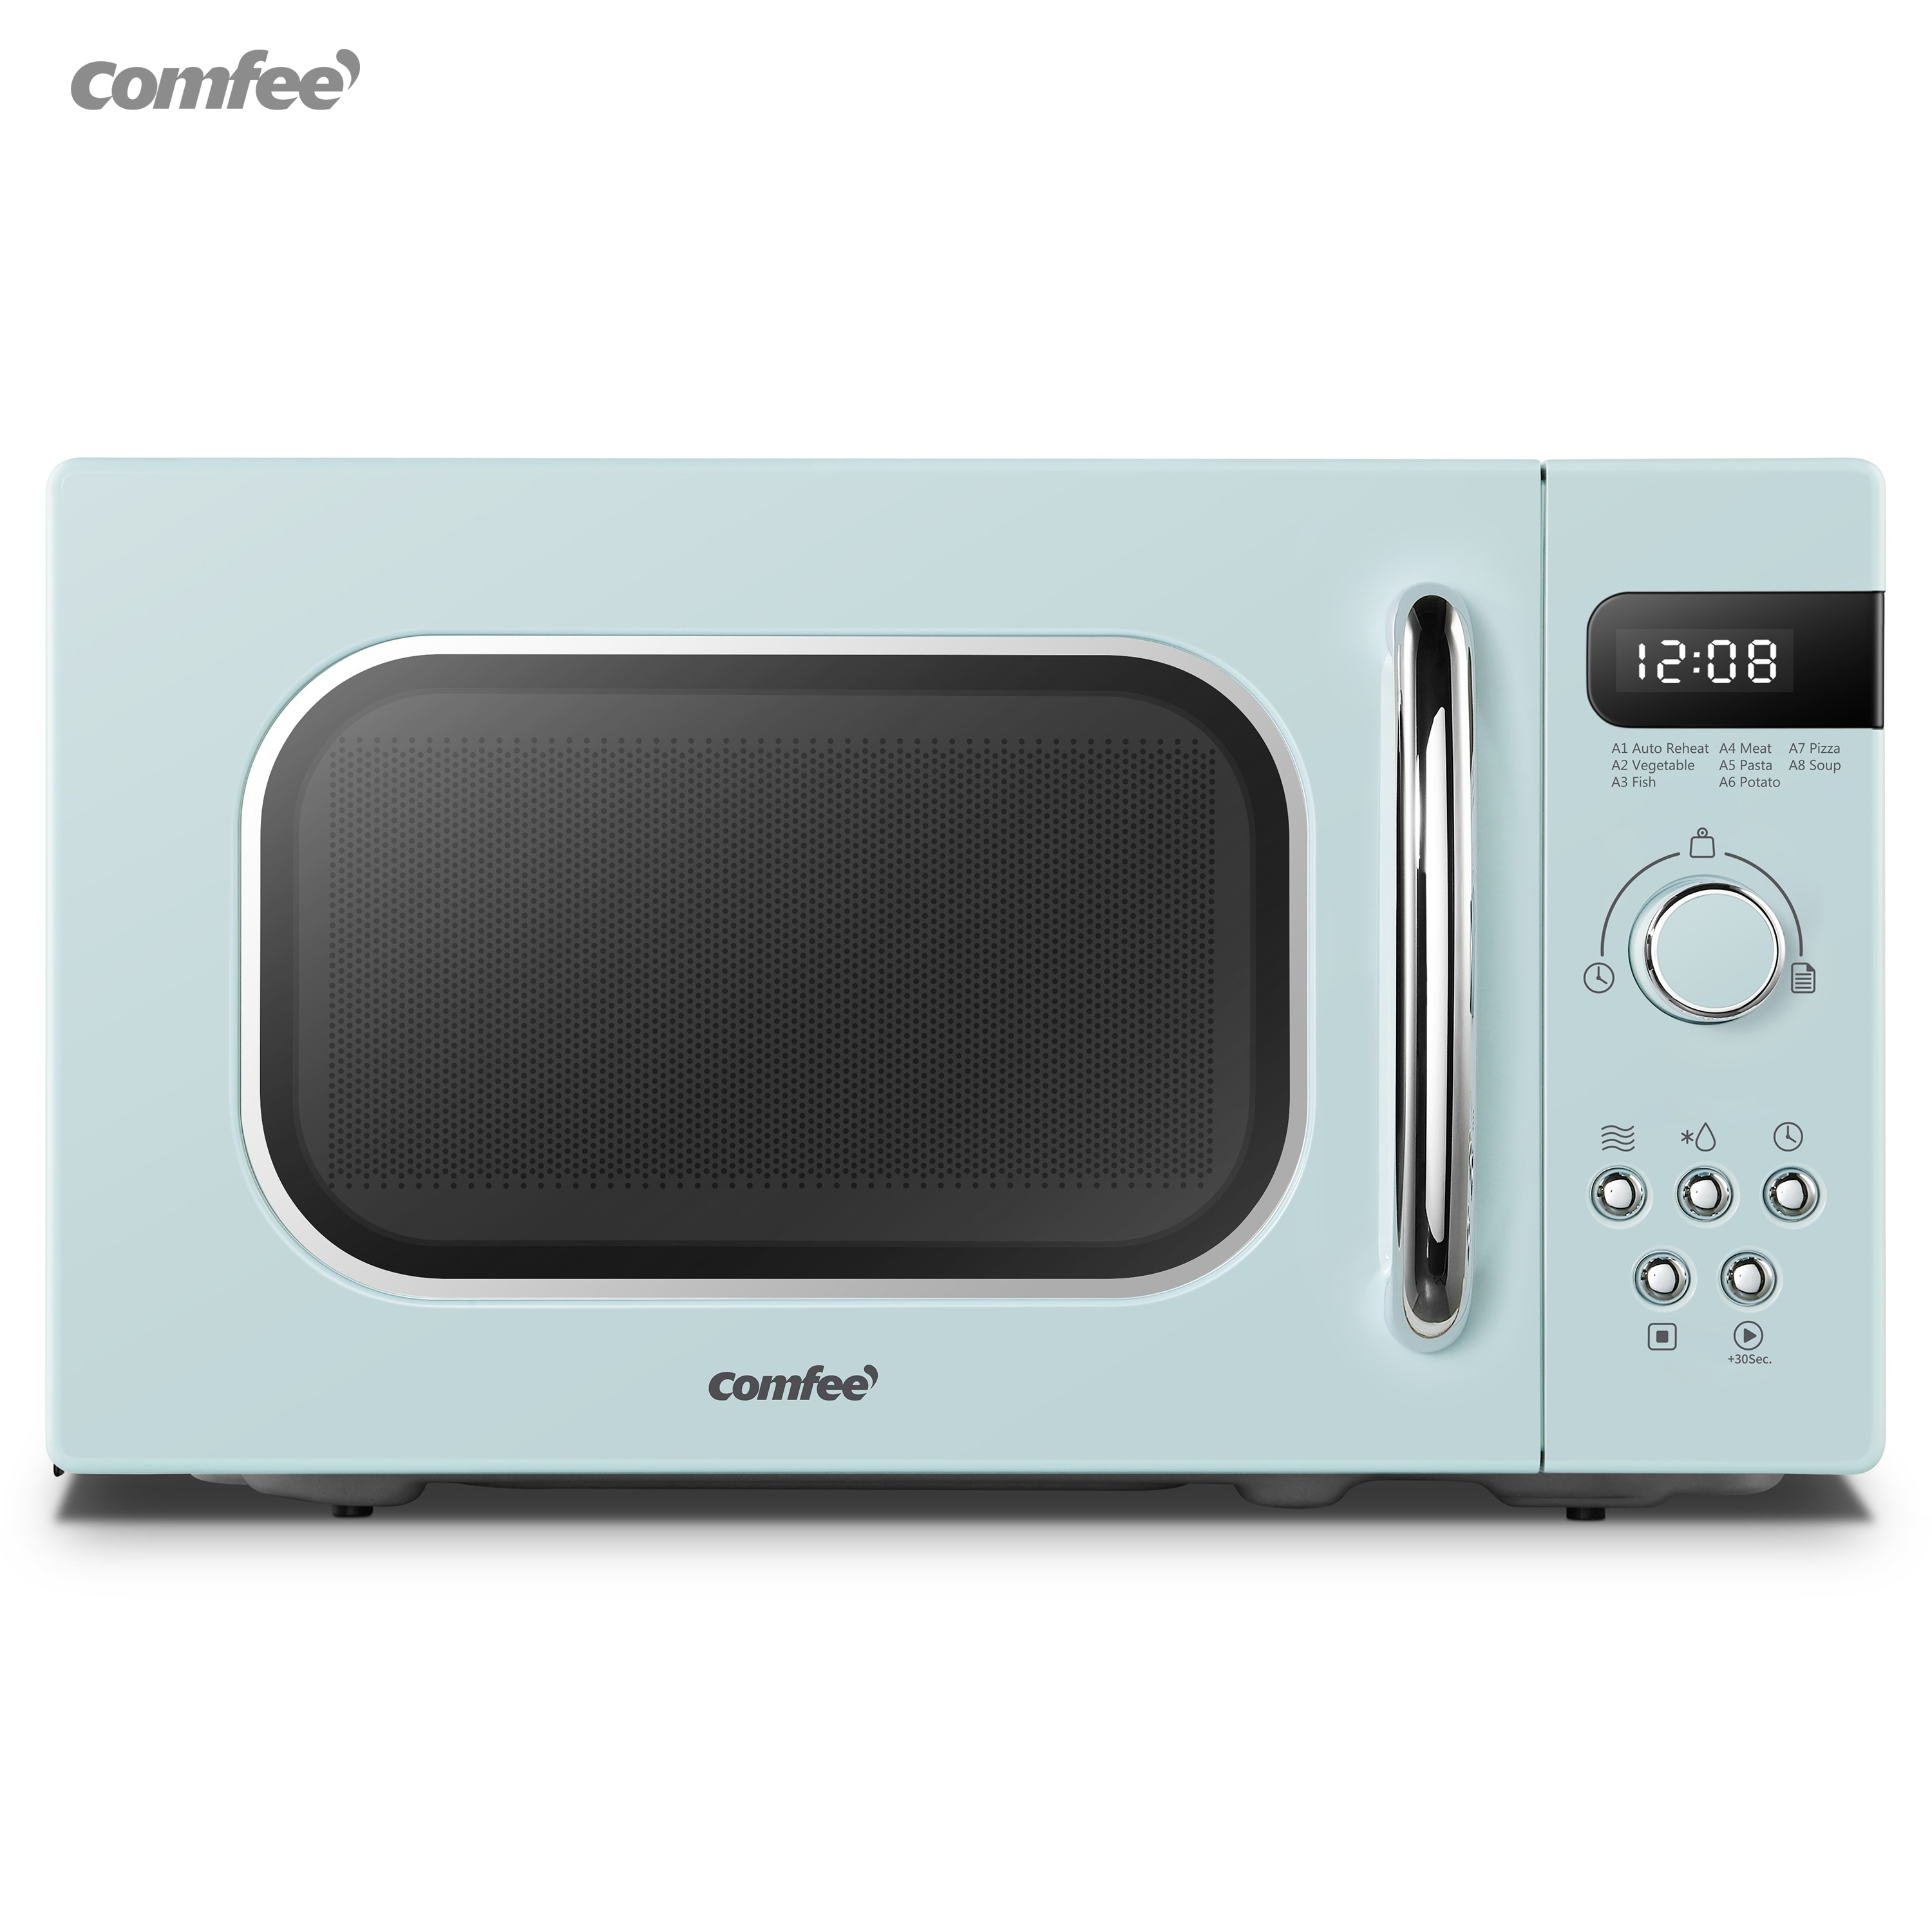 rotary microwave oven fully automatic 6 speed adjustable unified temperature control 20l low power consumption lightweight new COMFEE Blue Retro Style 800w 20L Microwave Oven With 8 Auto Menus 5 Cooking Power Levels and Express Cook Button Apricot Cream